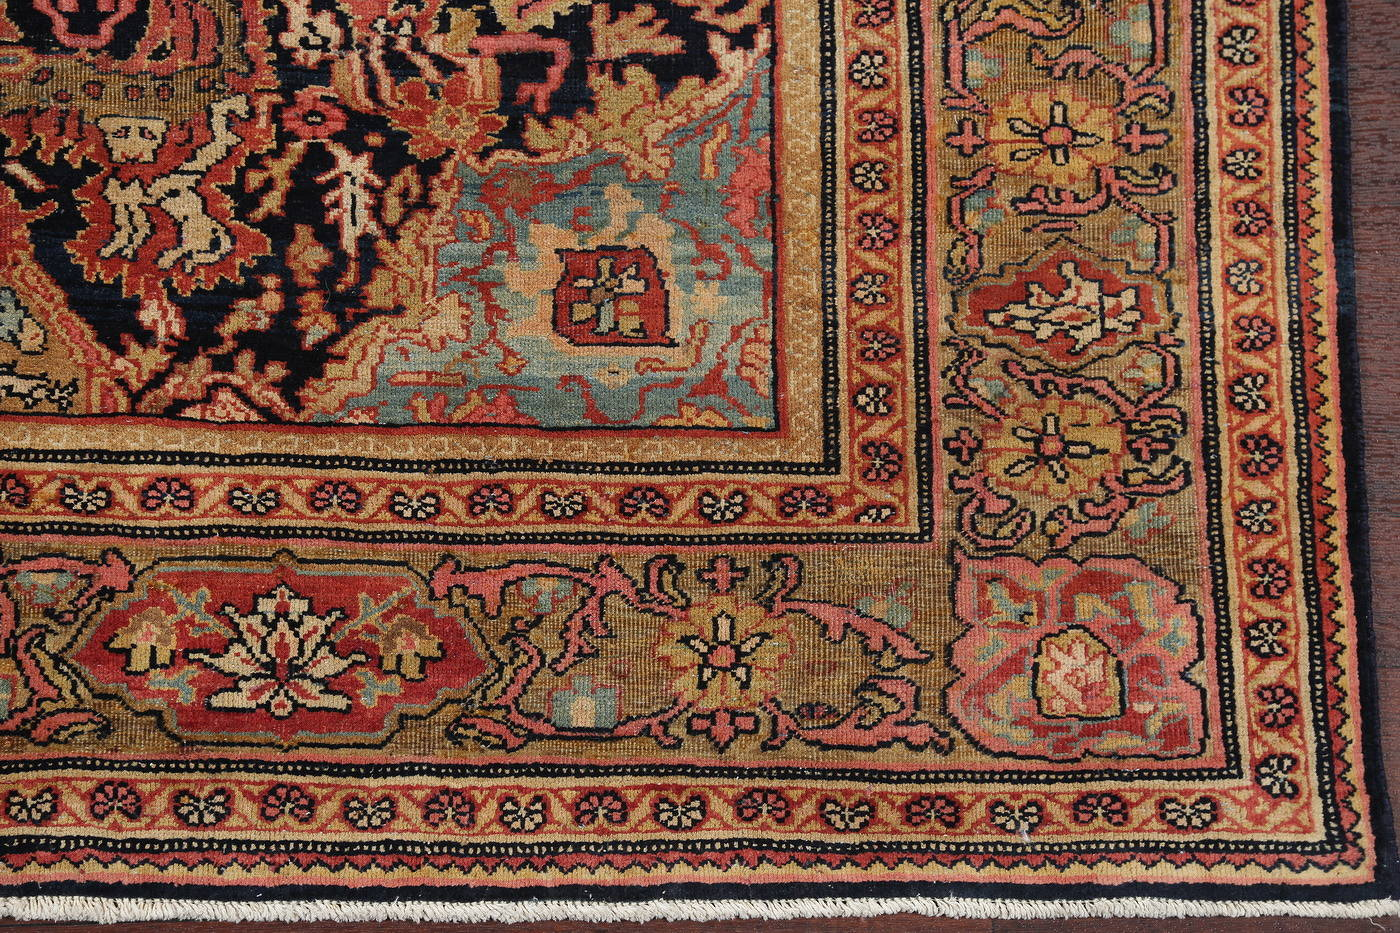 Antique Animal Pictorial Sarouk Farahan Persian Rug 5x7